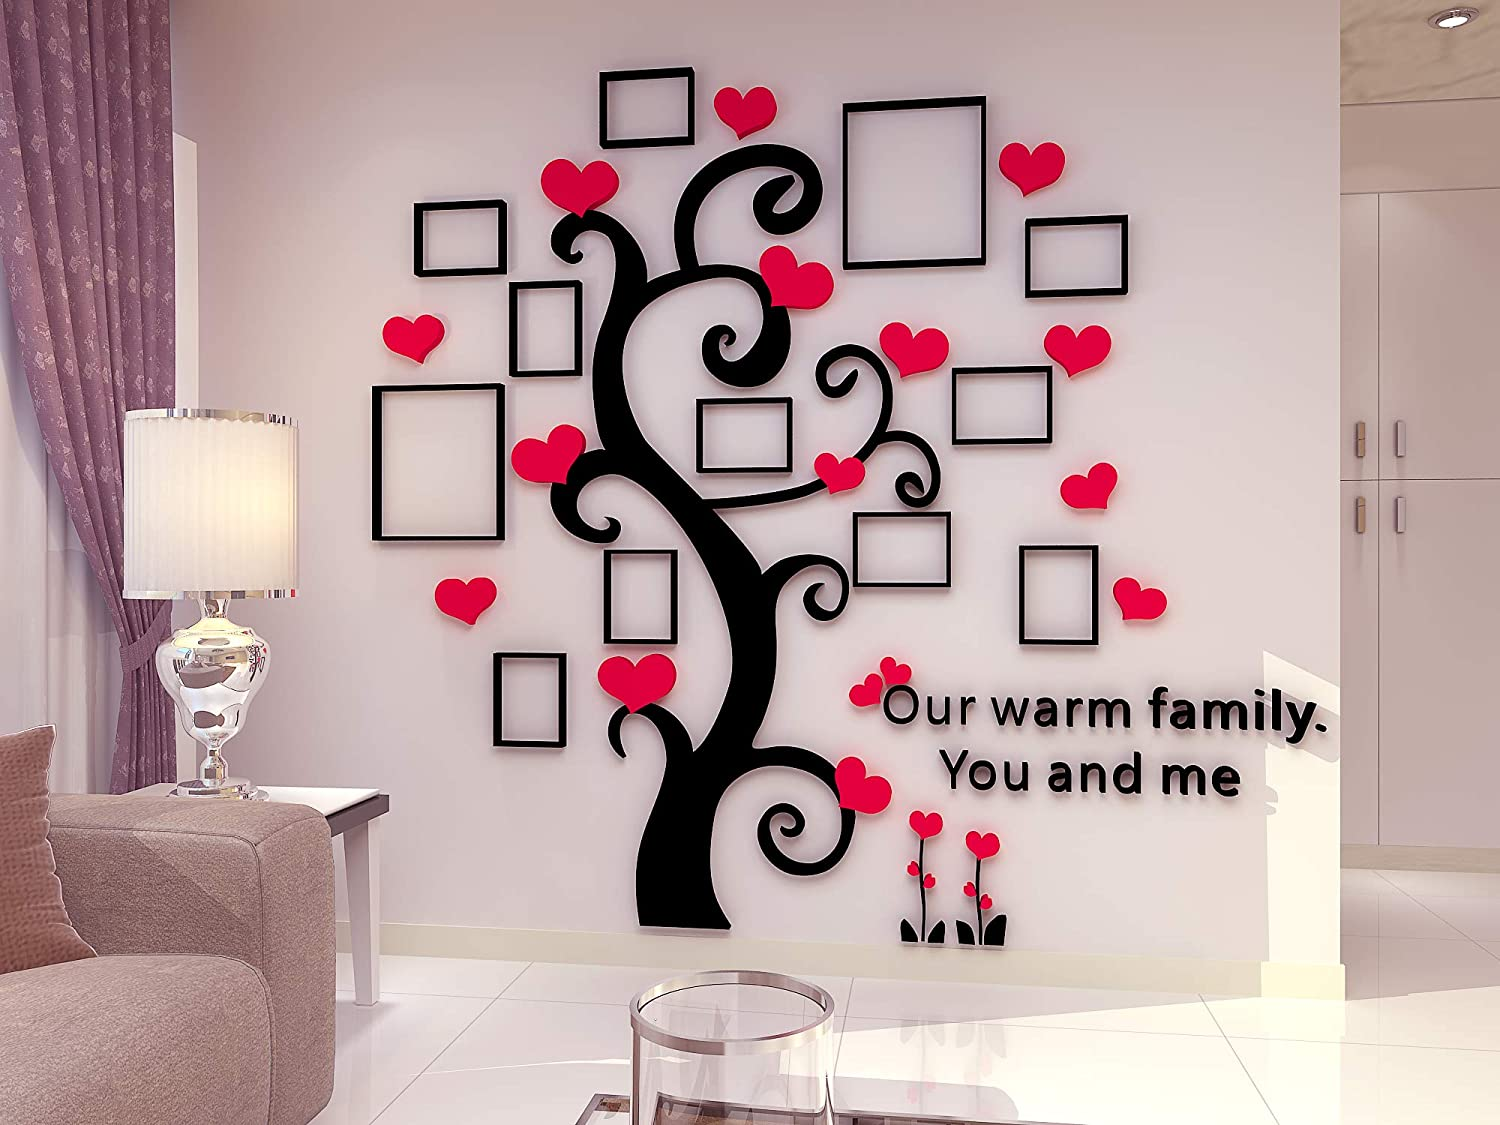 Unitendo 3D Wall Stickers Photo Frames FamilyTree Wall Decal Easy to Install &Apply DIY Photo Gallery Frame Decor Sticker Home Art Decor, Red Heart and Thick Trunk, L.